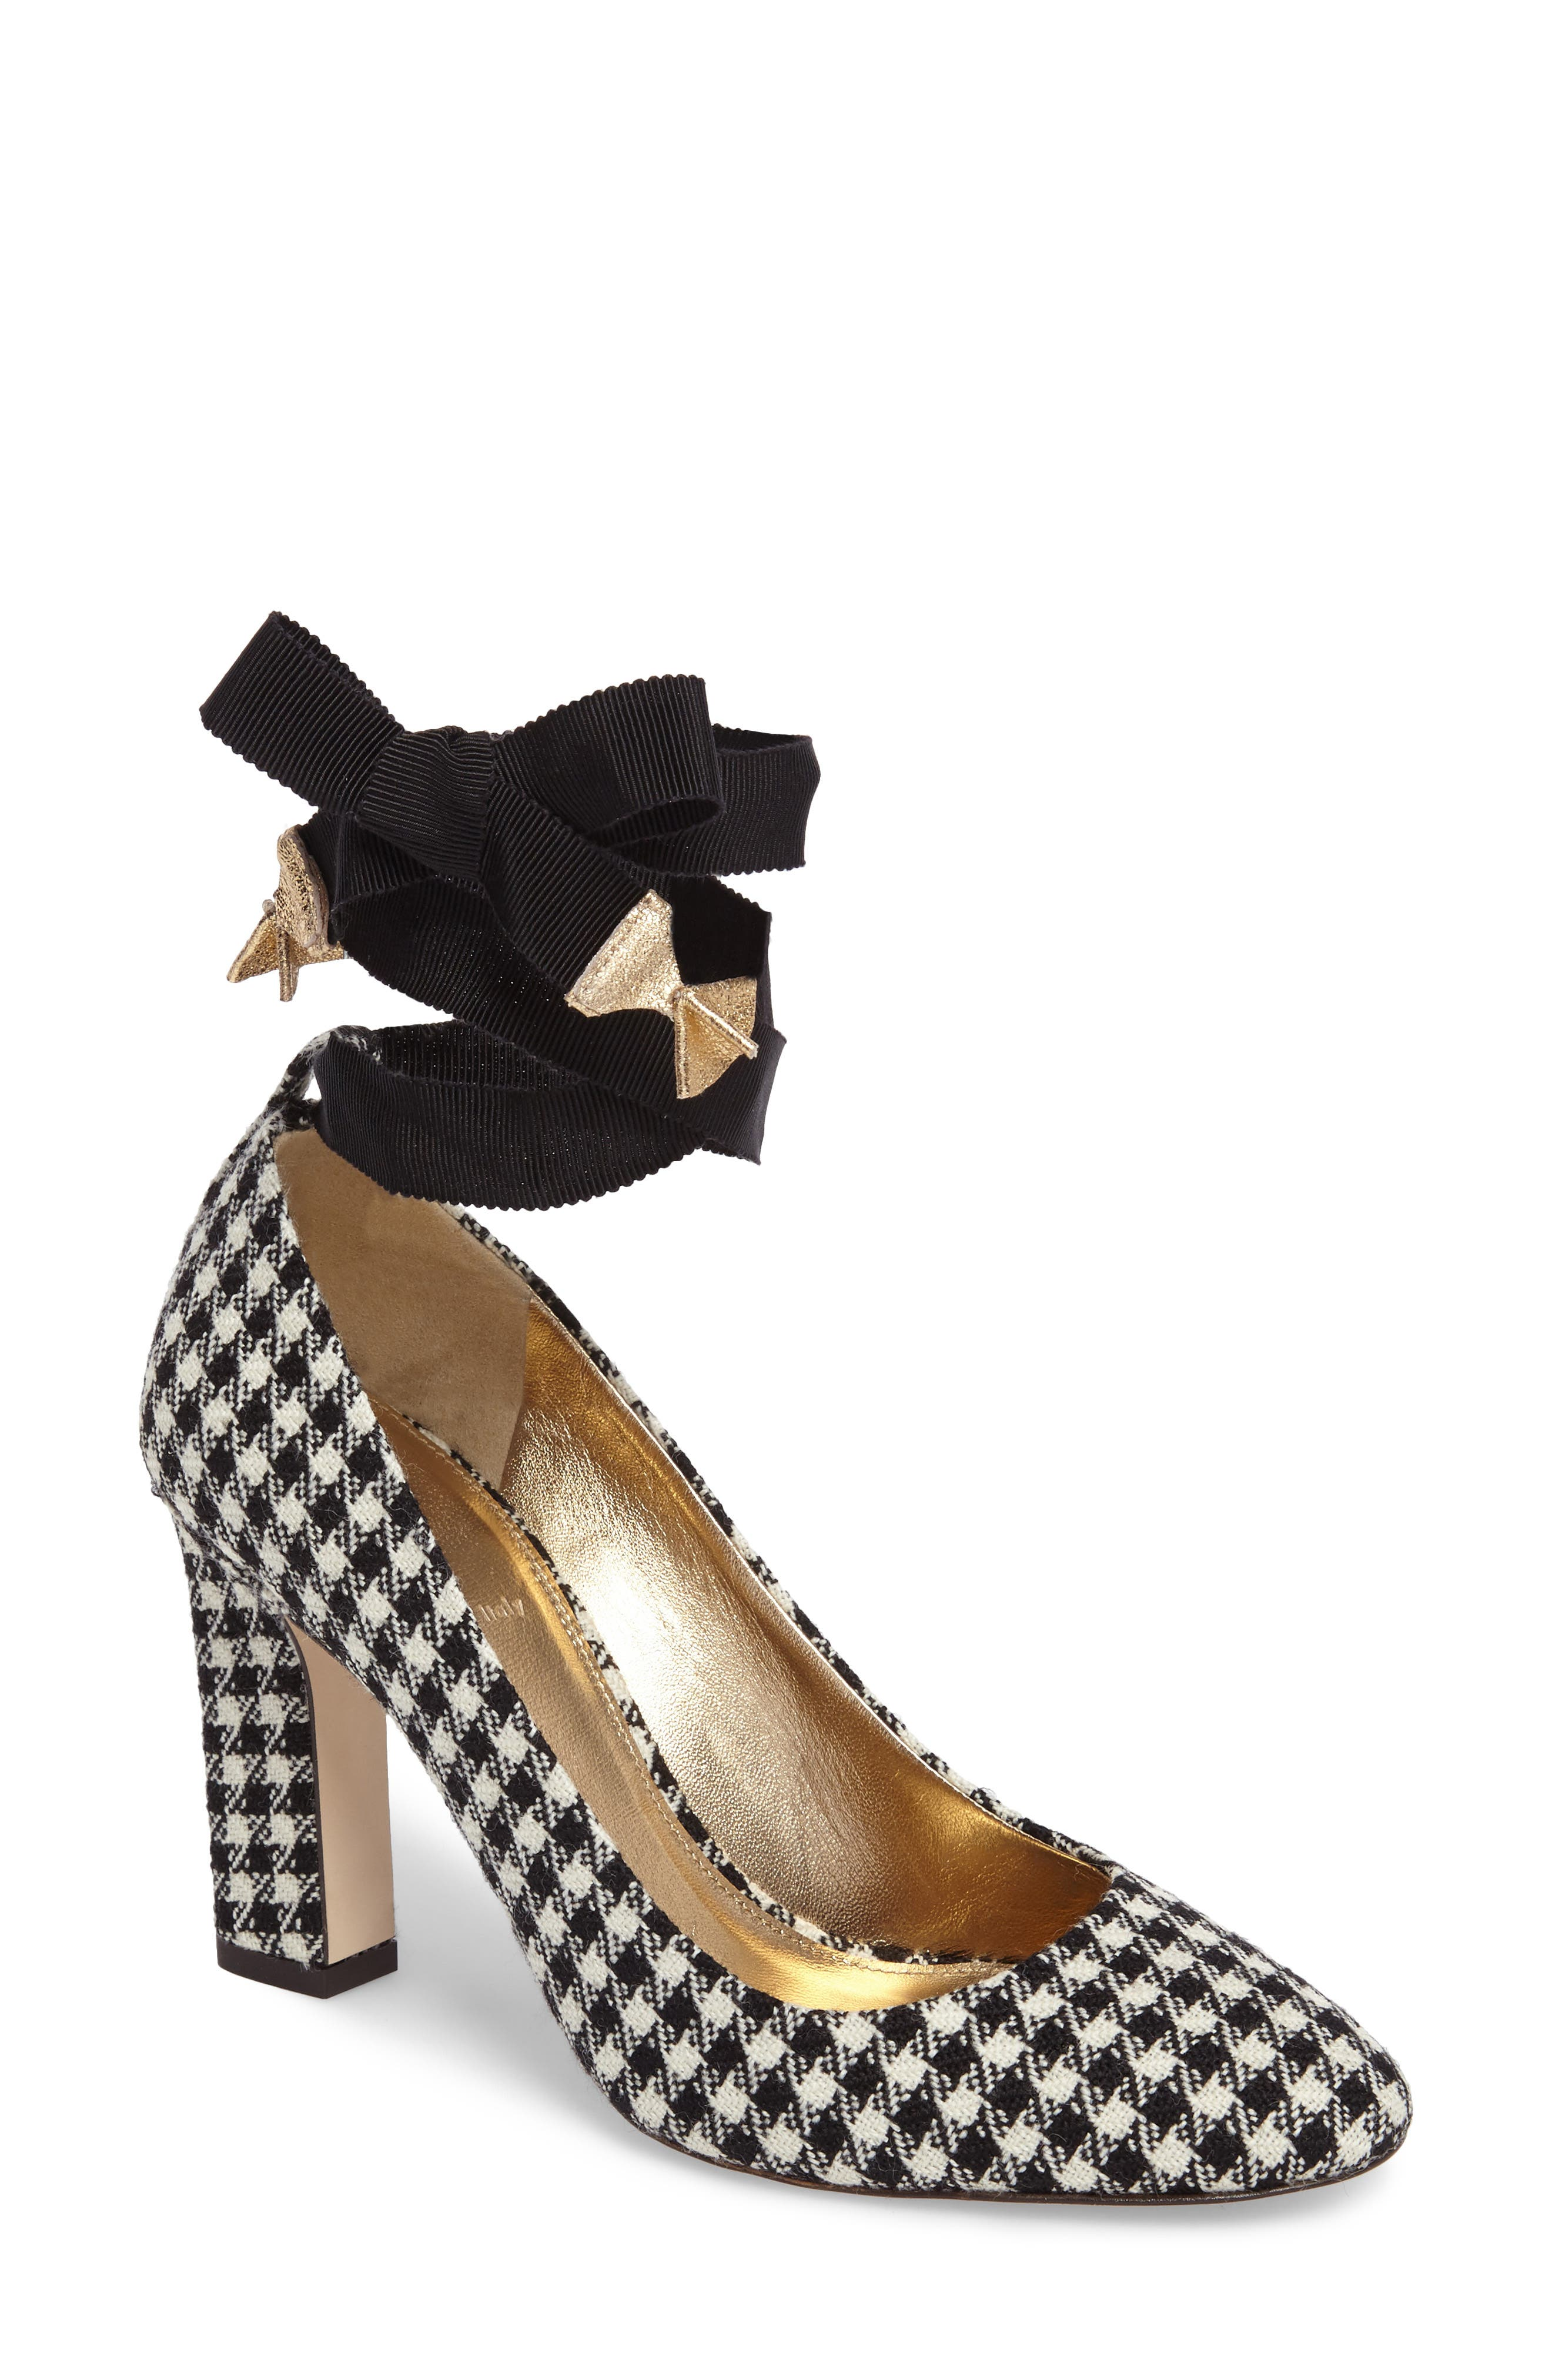 J. Crew Bell Ankle Tie Pump,                             Main thumbnail 1, color,                             Black/ Ivory Fabric